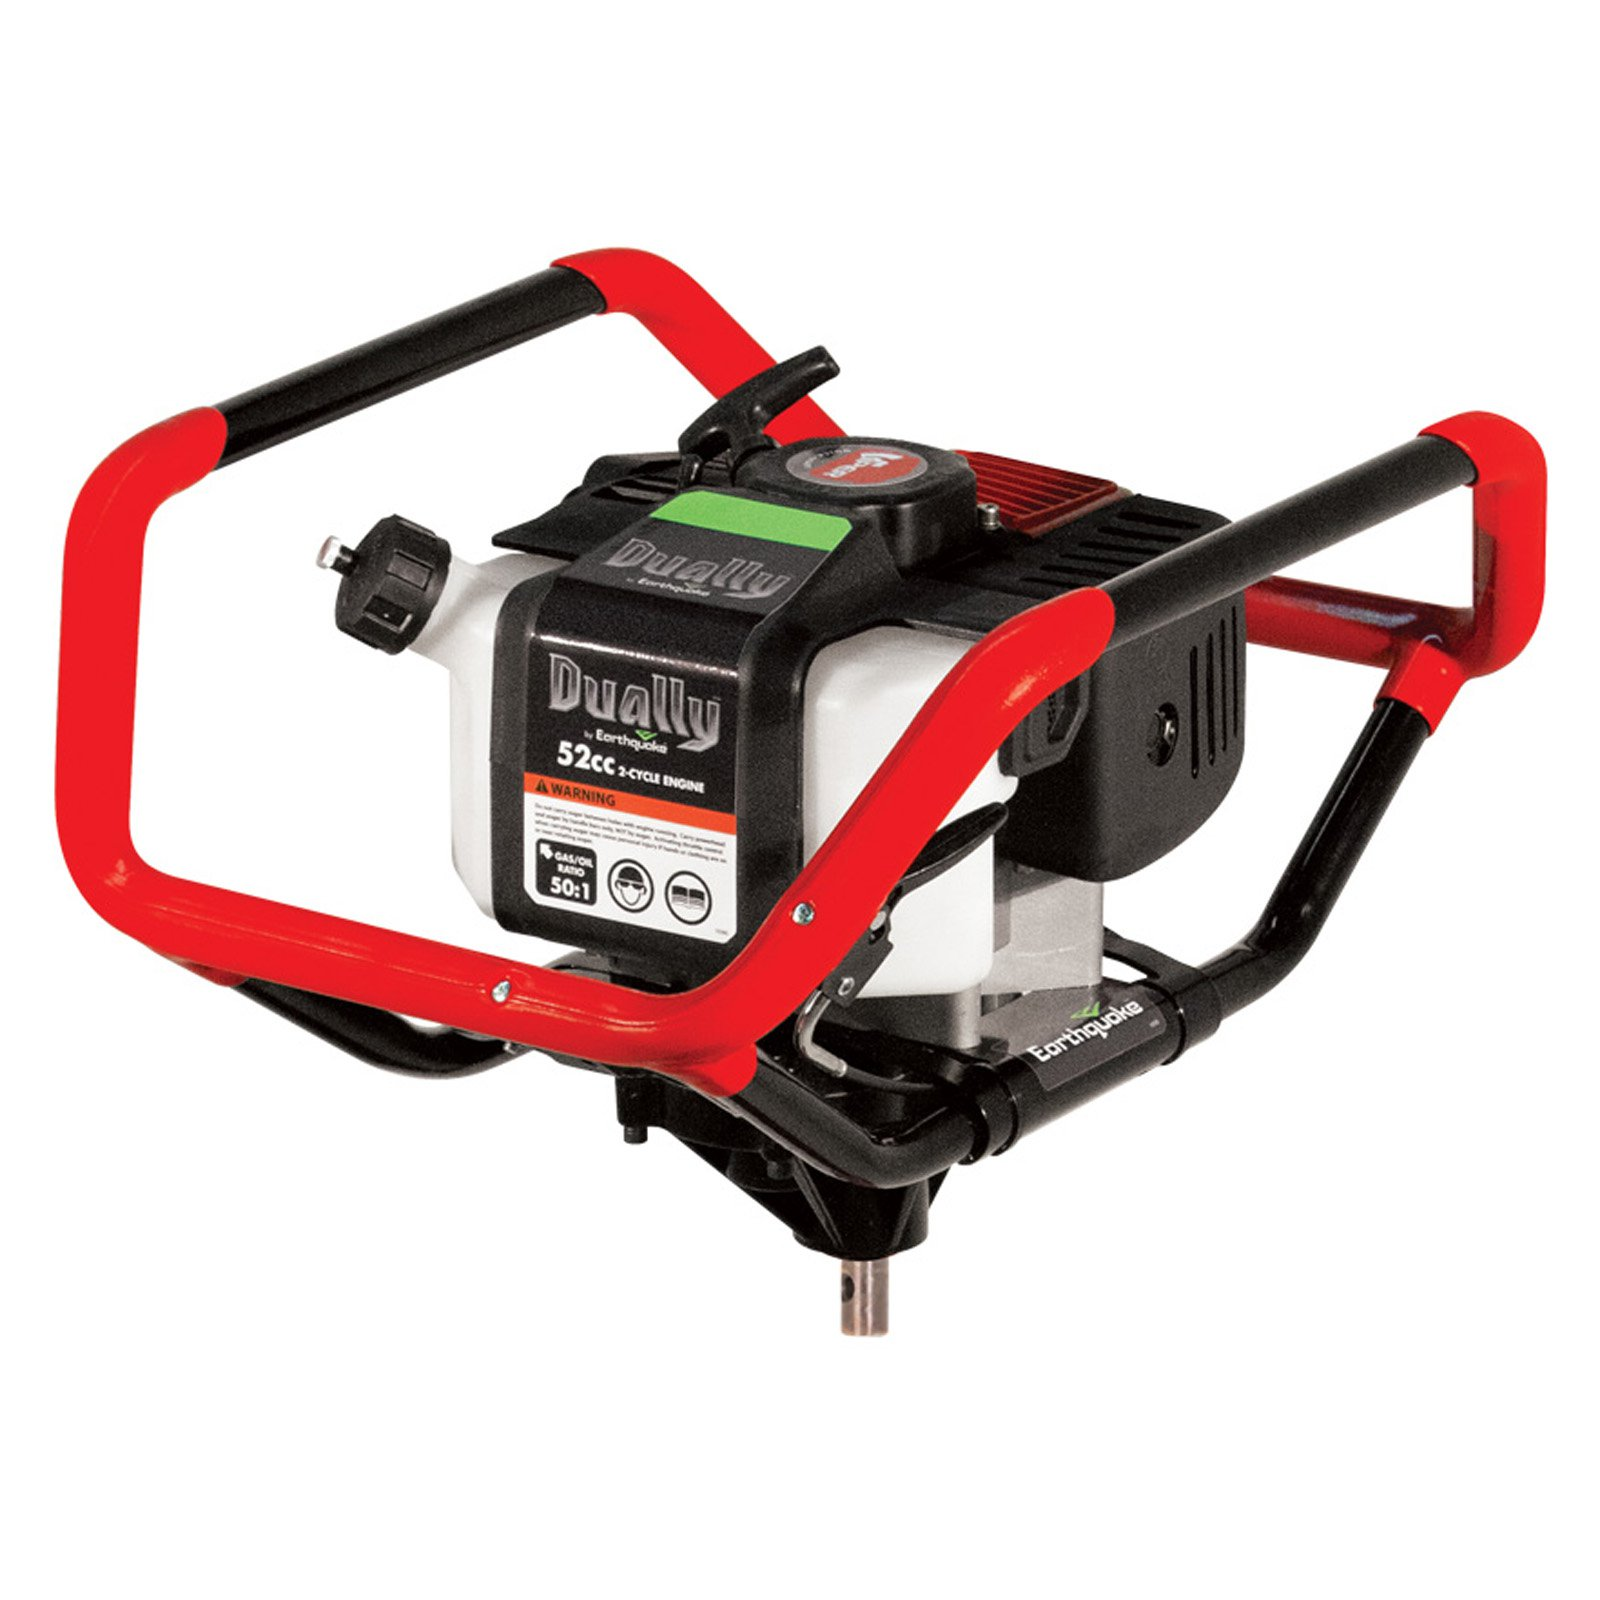 Earthquake Dually 1- or 2-Person 52cc Gas Earth Auger Powerhead, Red